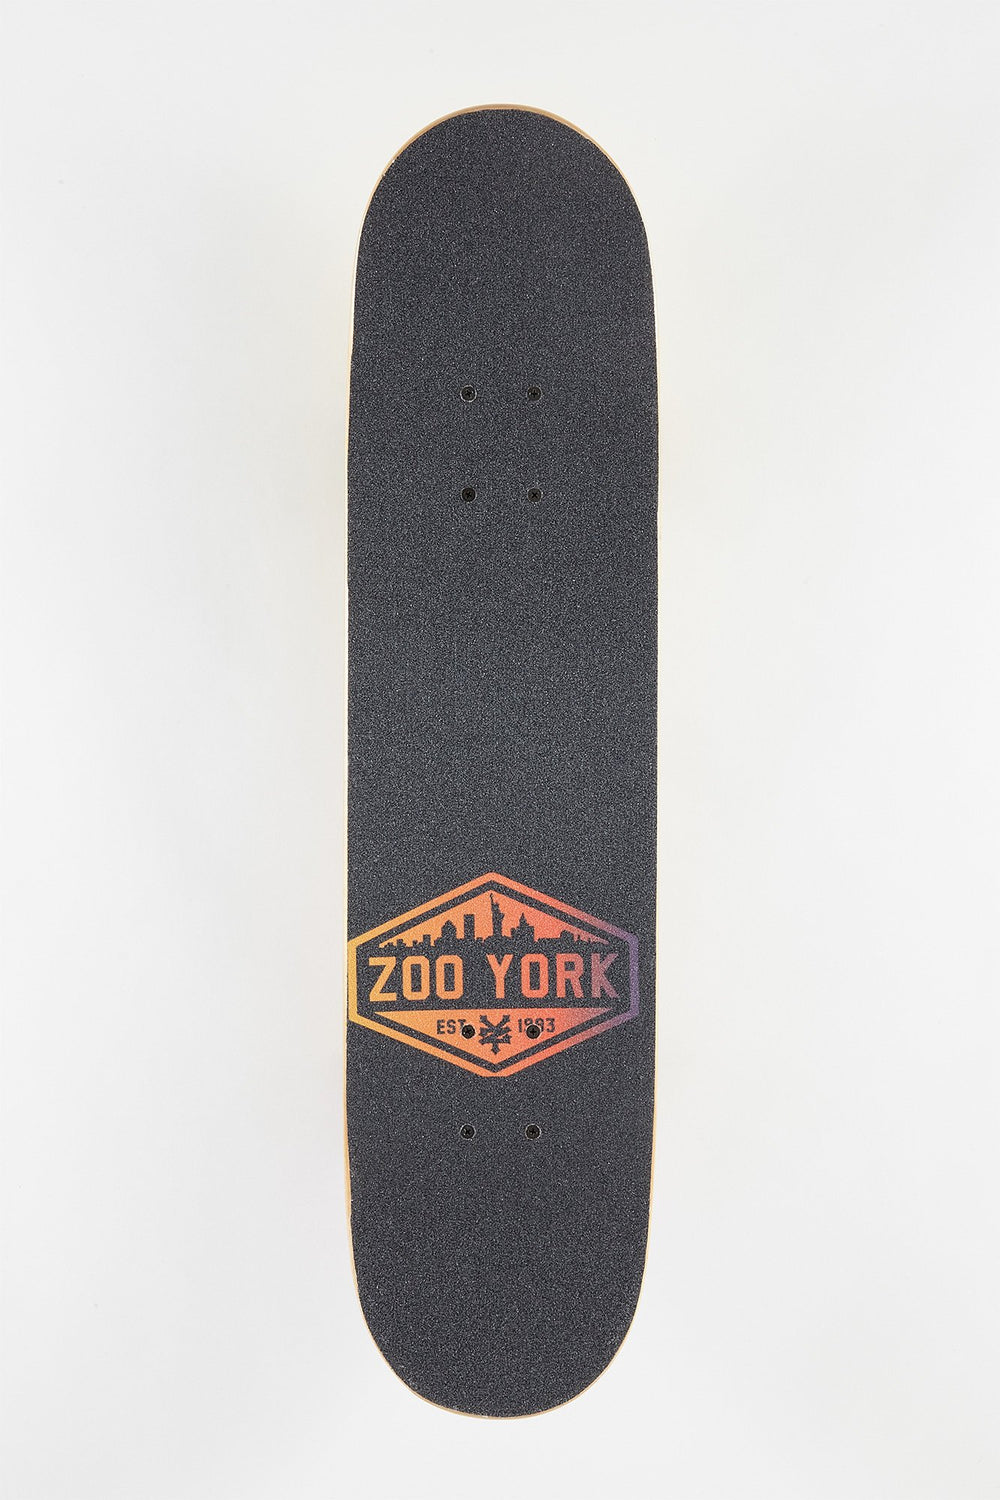 Skateboard Zoo York 8